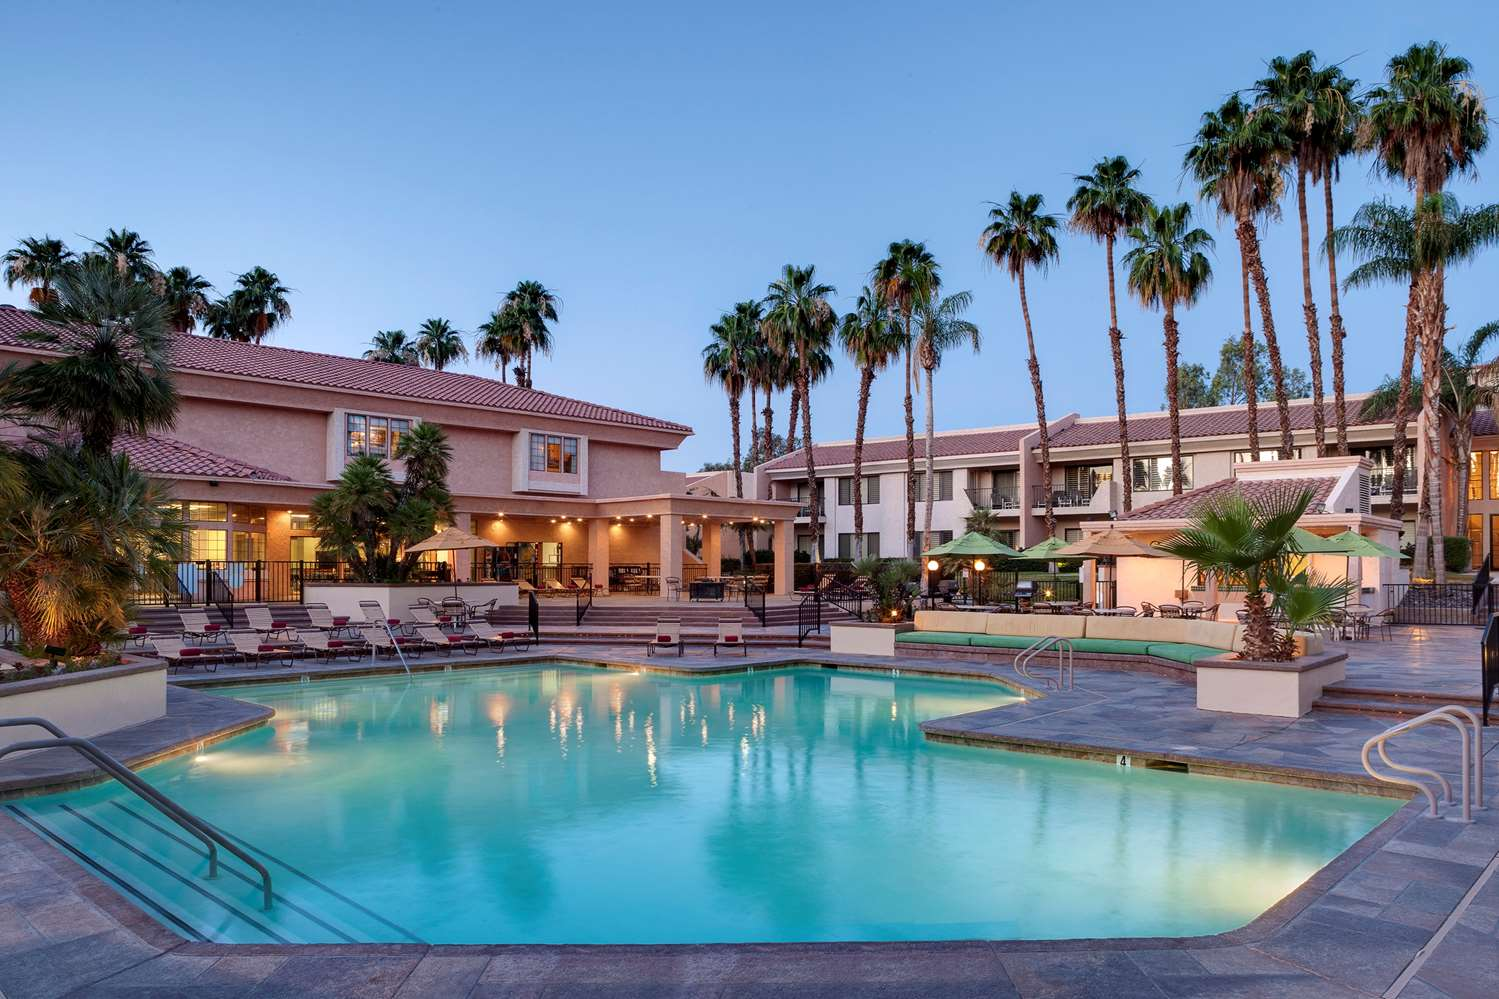 Welk Resorts Cathedral City Ca See Discounts